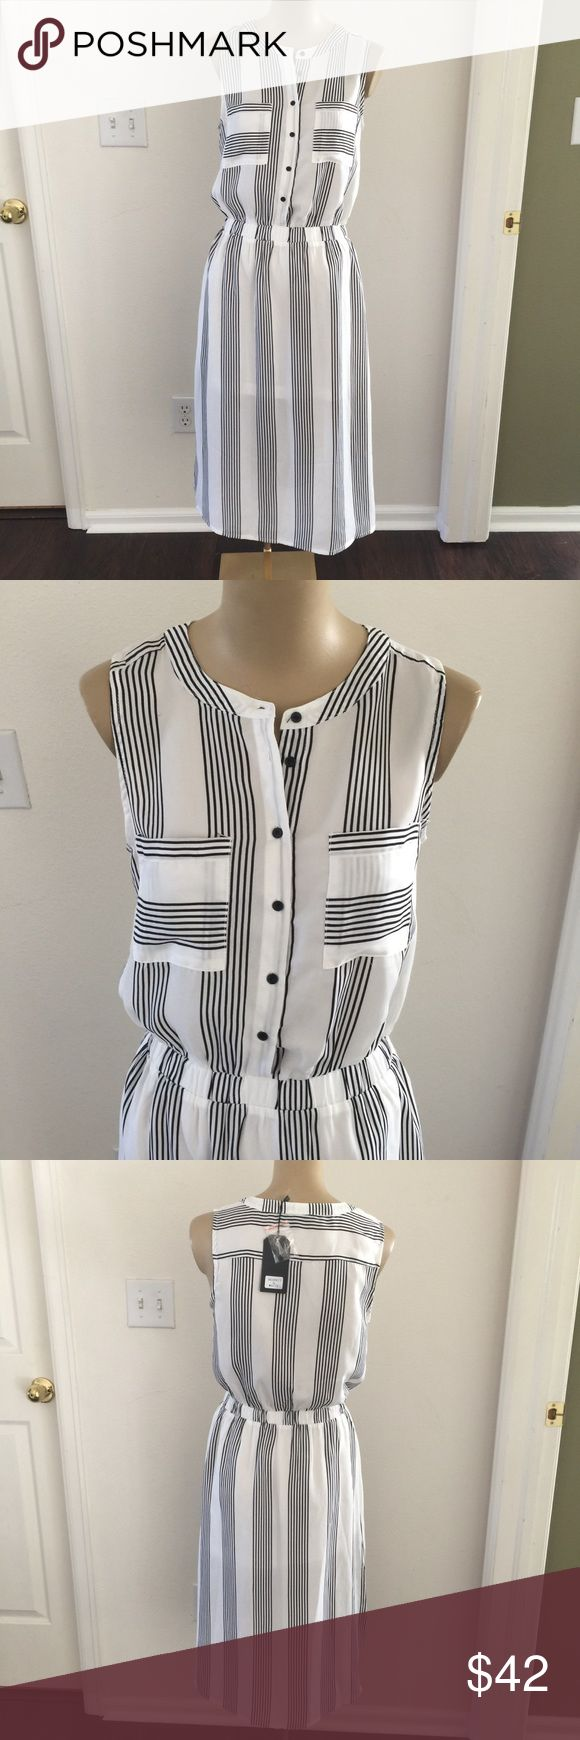 💛 NWT Black and white striped dress NWT black and white striped shirt sleeve dress. Has partial lining for the perfect effect Very J Dresses